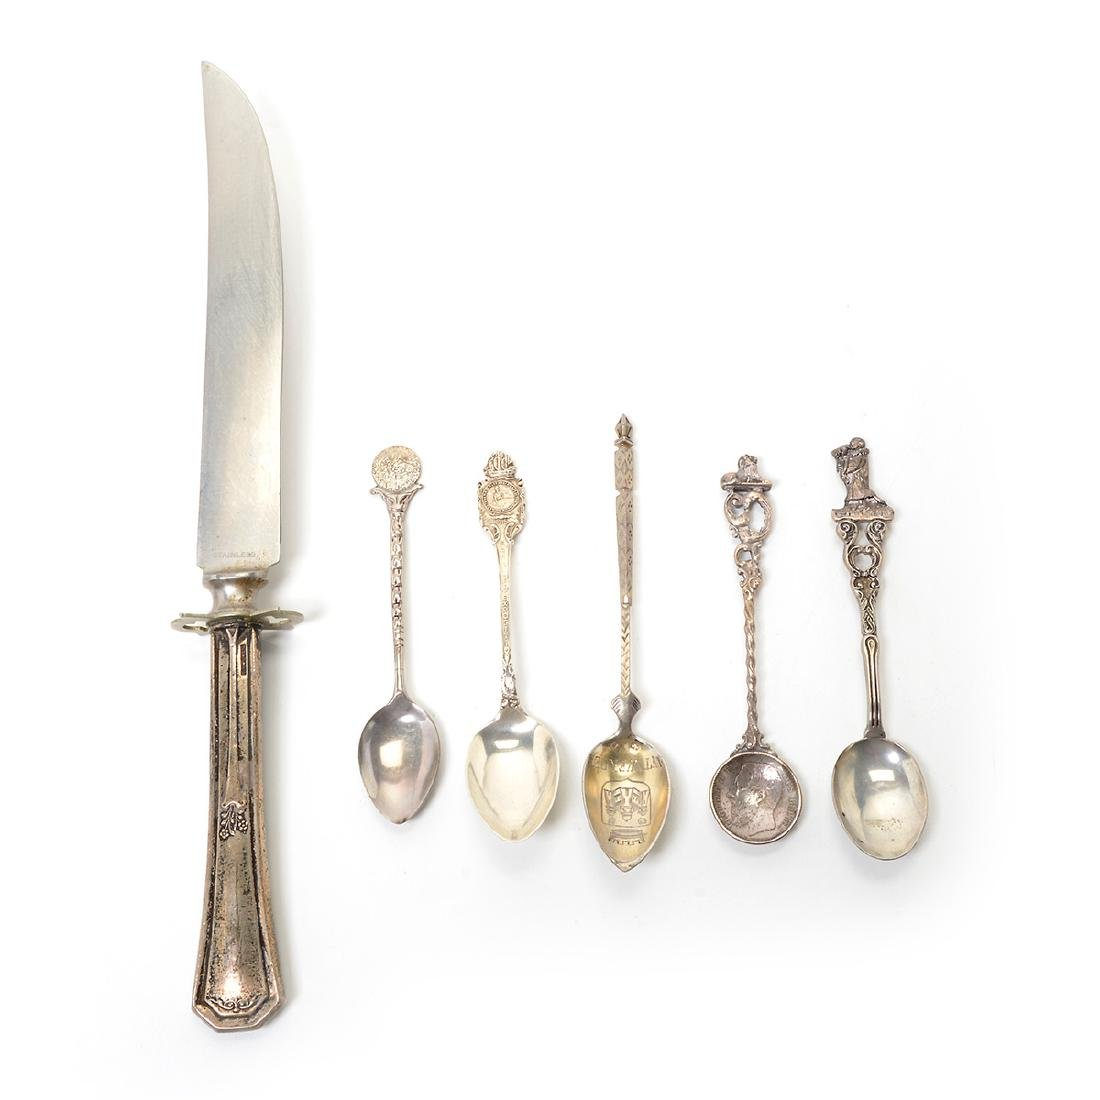 Assorted Coin Silver Flatware with Souvenir Spoons - 6